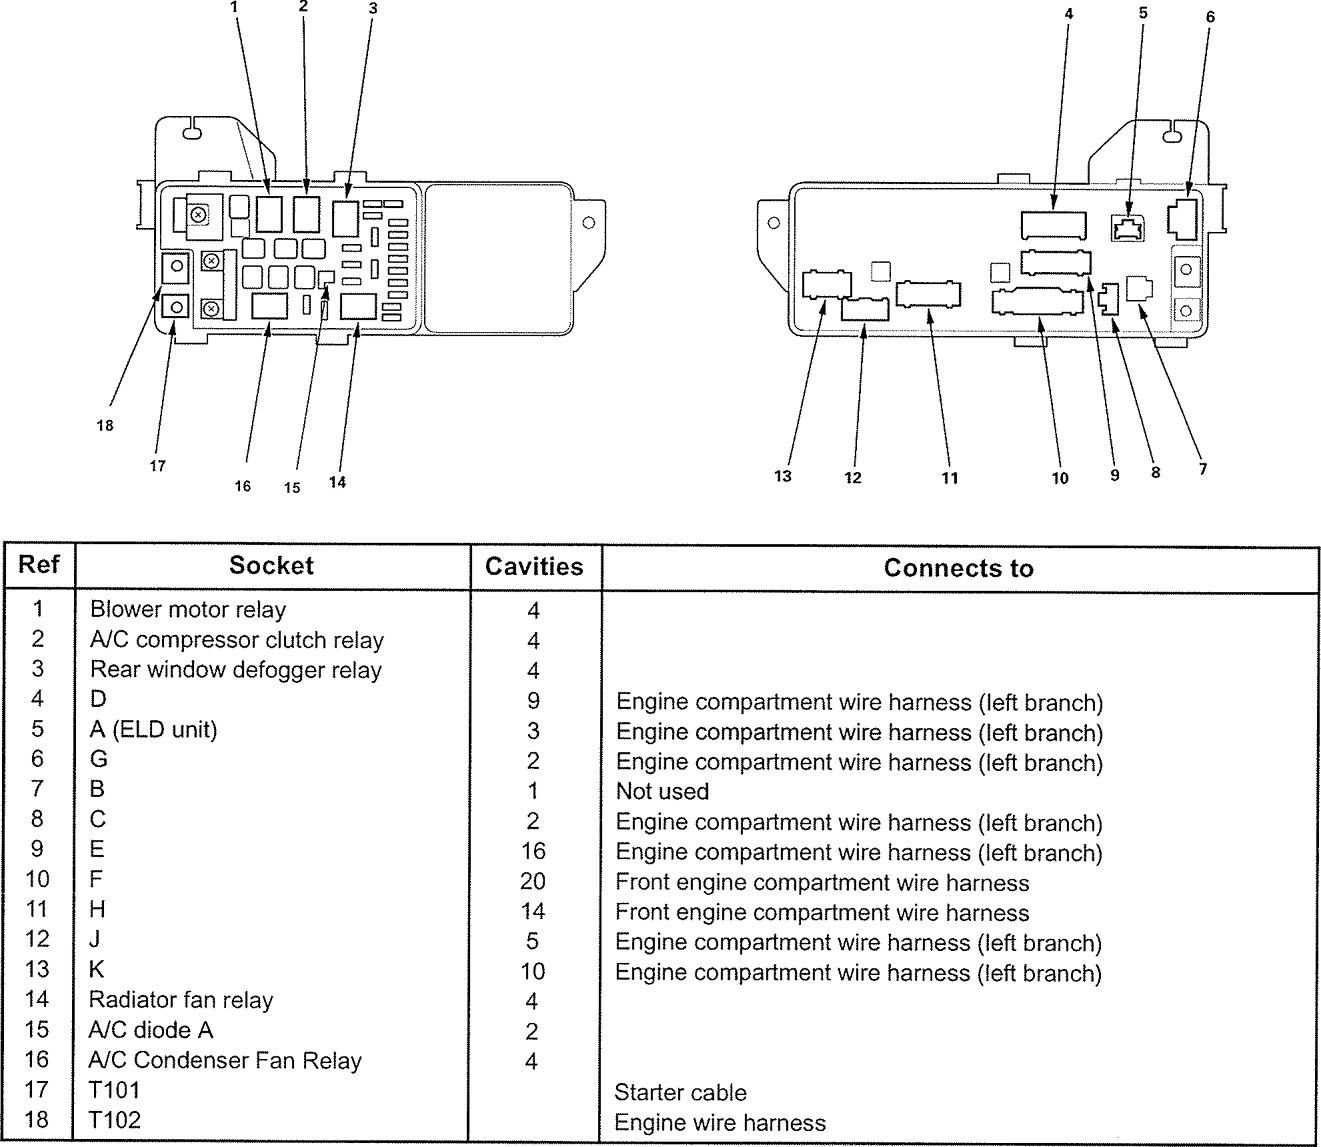 Wiring Diagram For Acura Rsx 06 Auto Electrical Blower Motor Honda Element